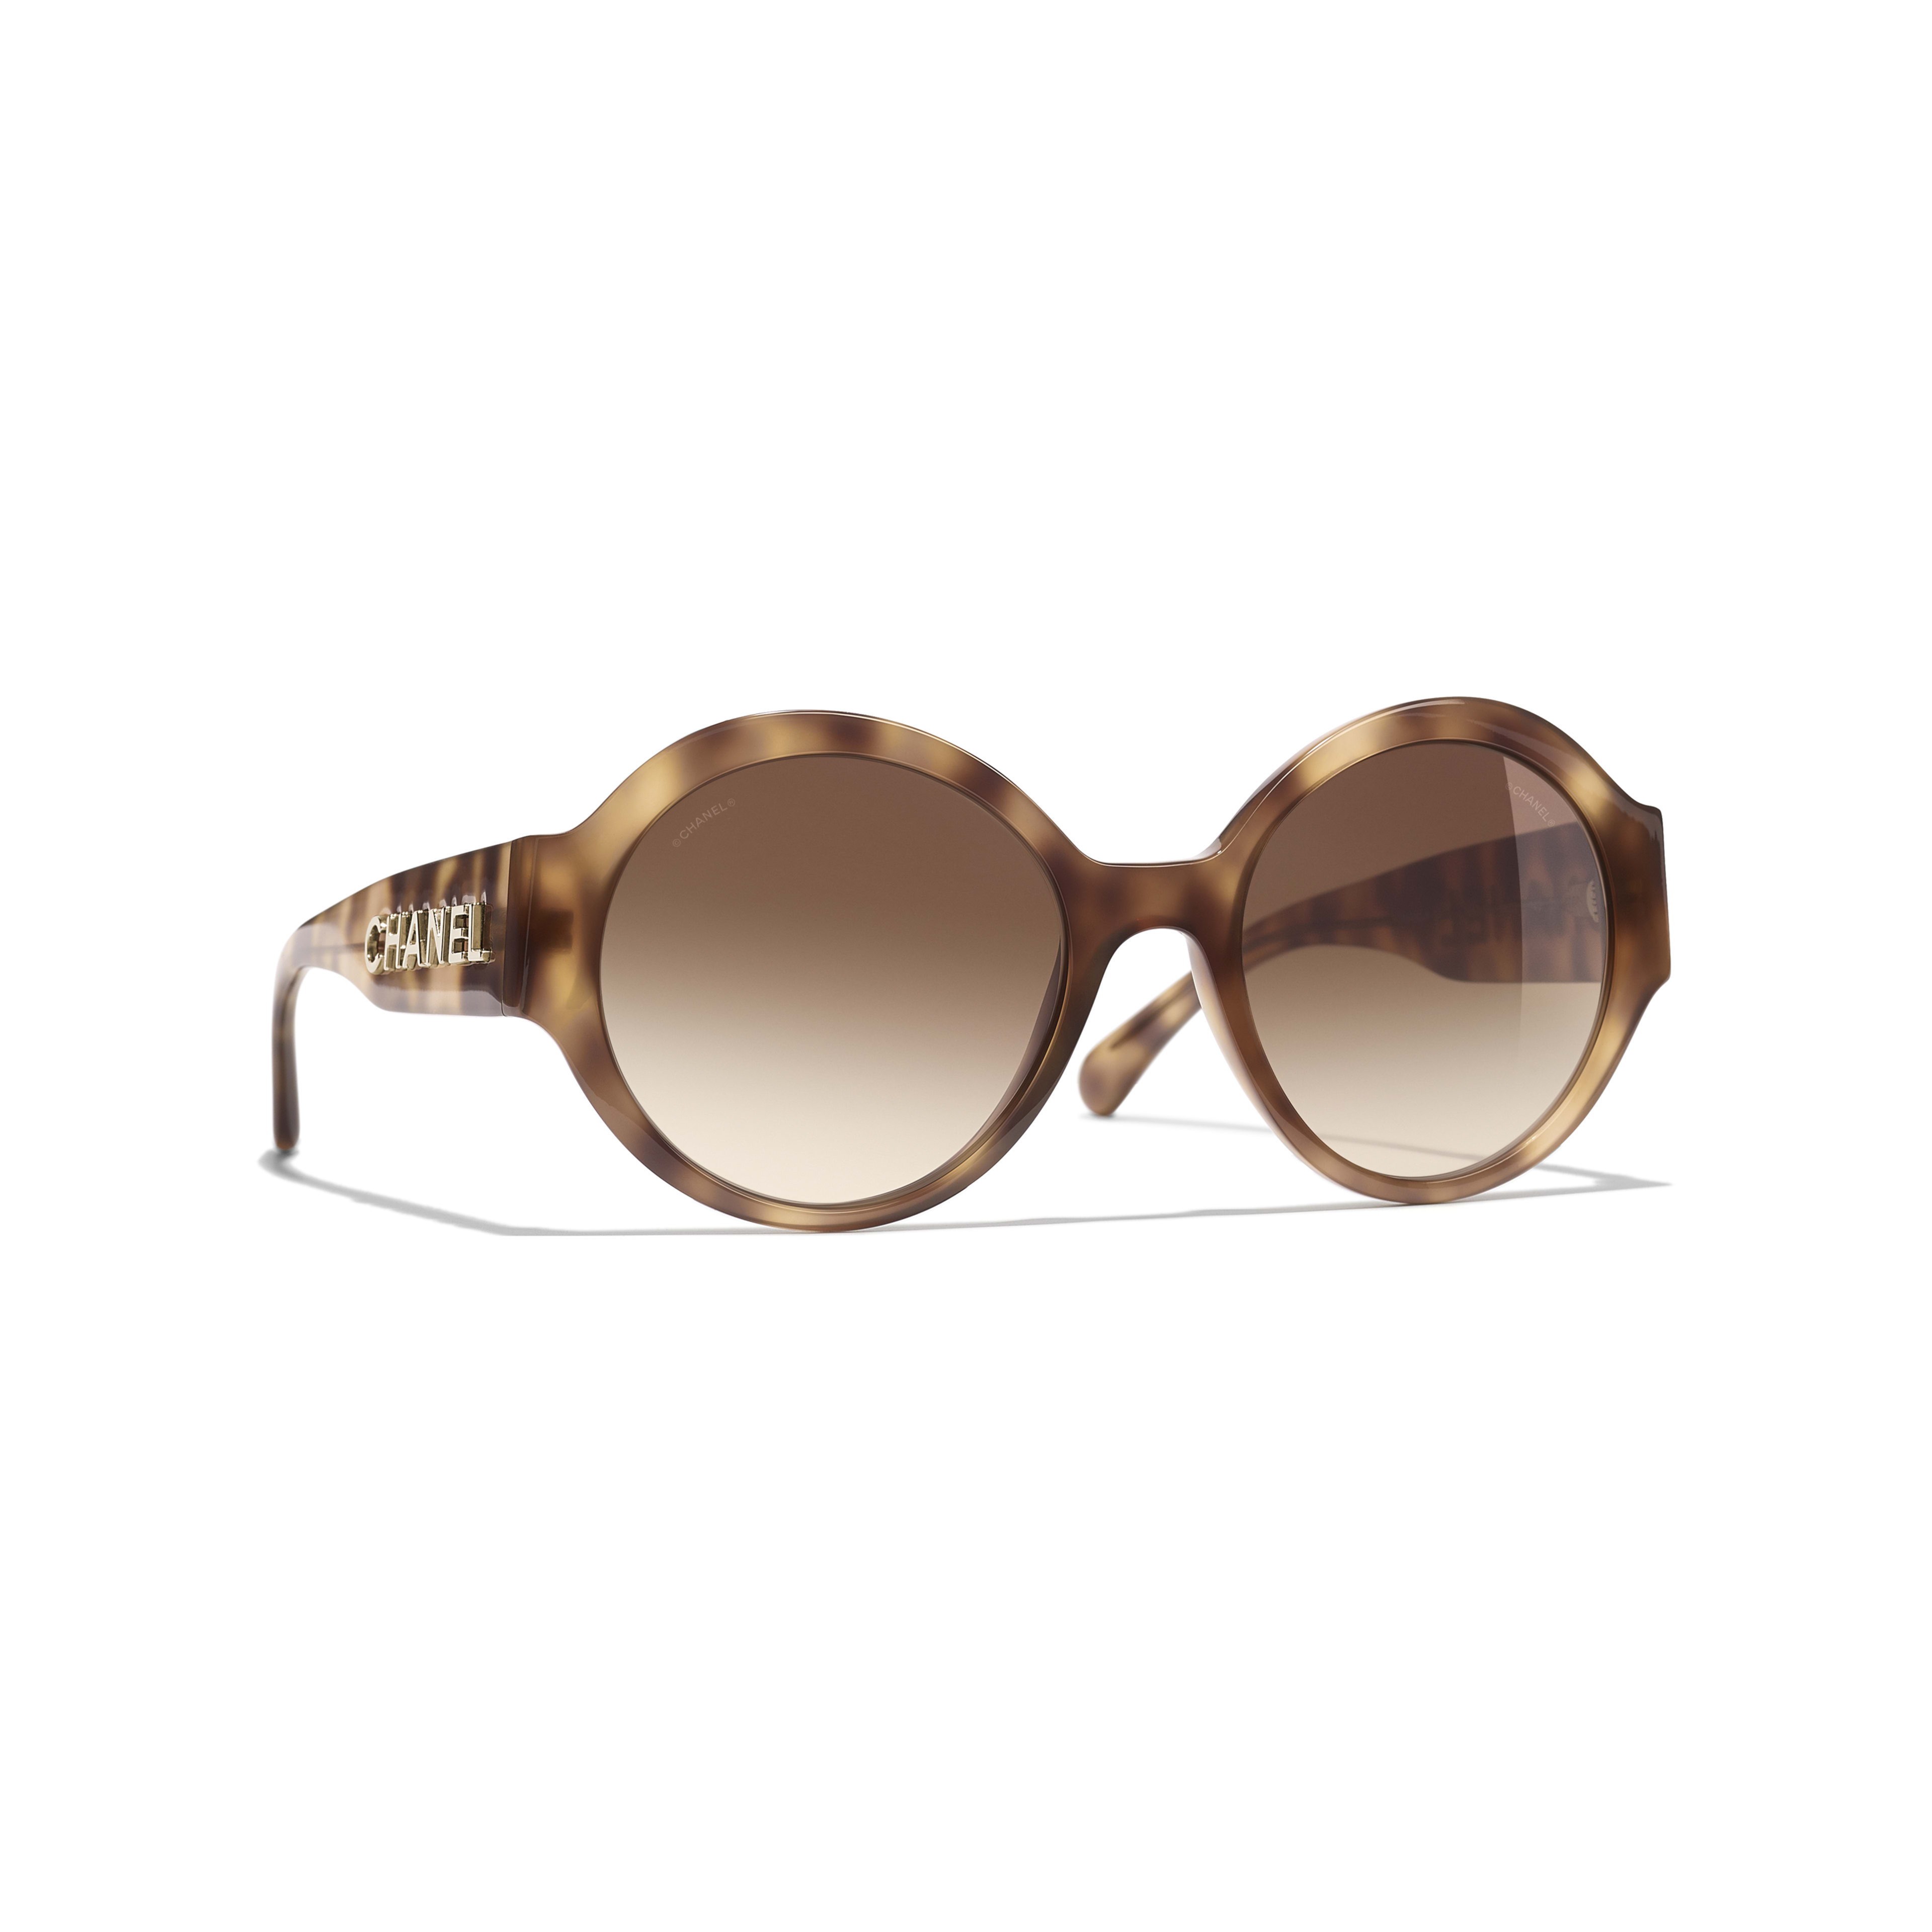 Round Sunglasses - Light Tortoise - Acetate - CHANEL - Default view - see standard sized version